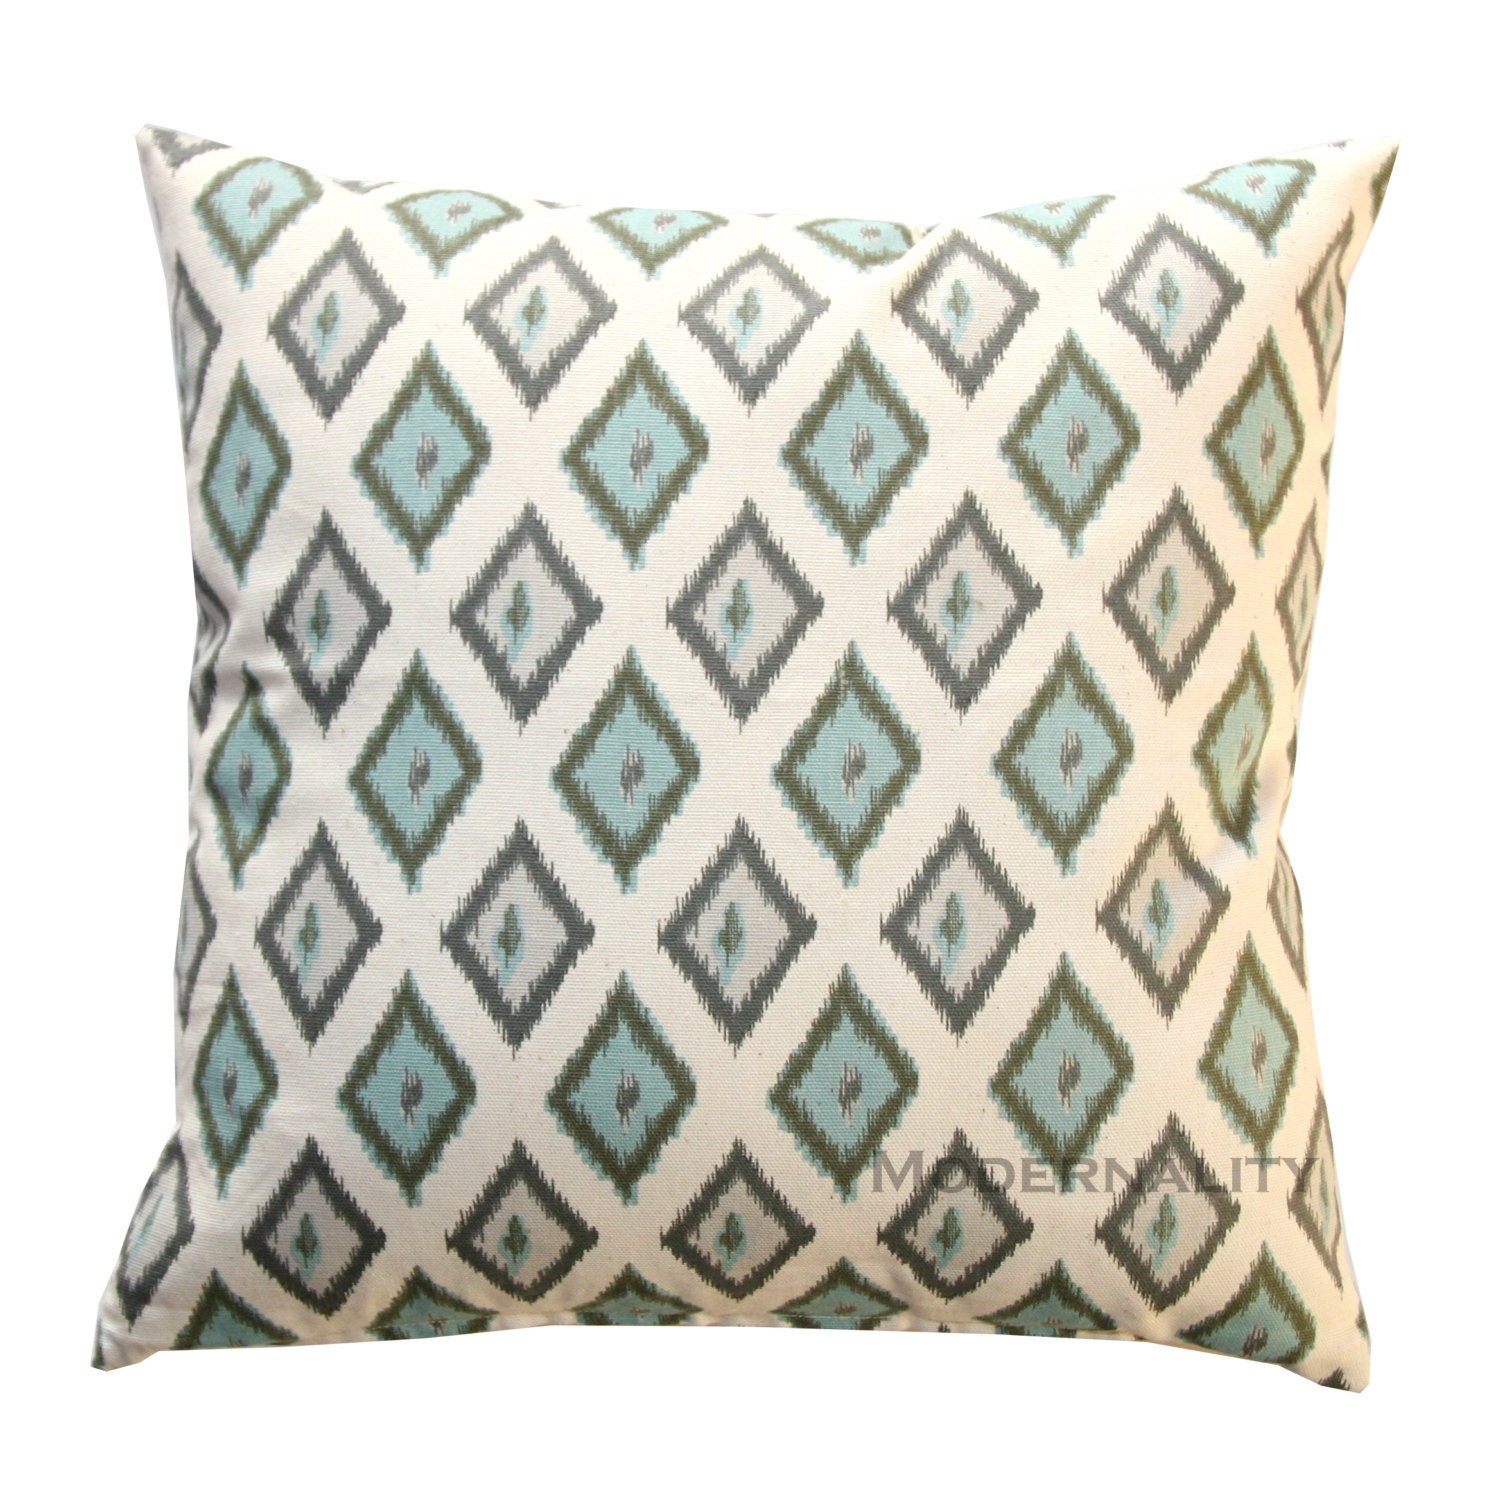 Throw Pillows In Clearance : CLEARANCE Decorative Throw Pillow Cover Diamond Pillow Spa